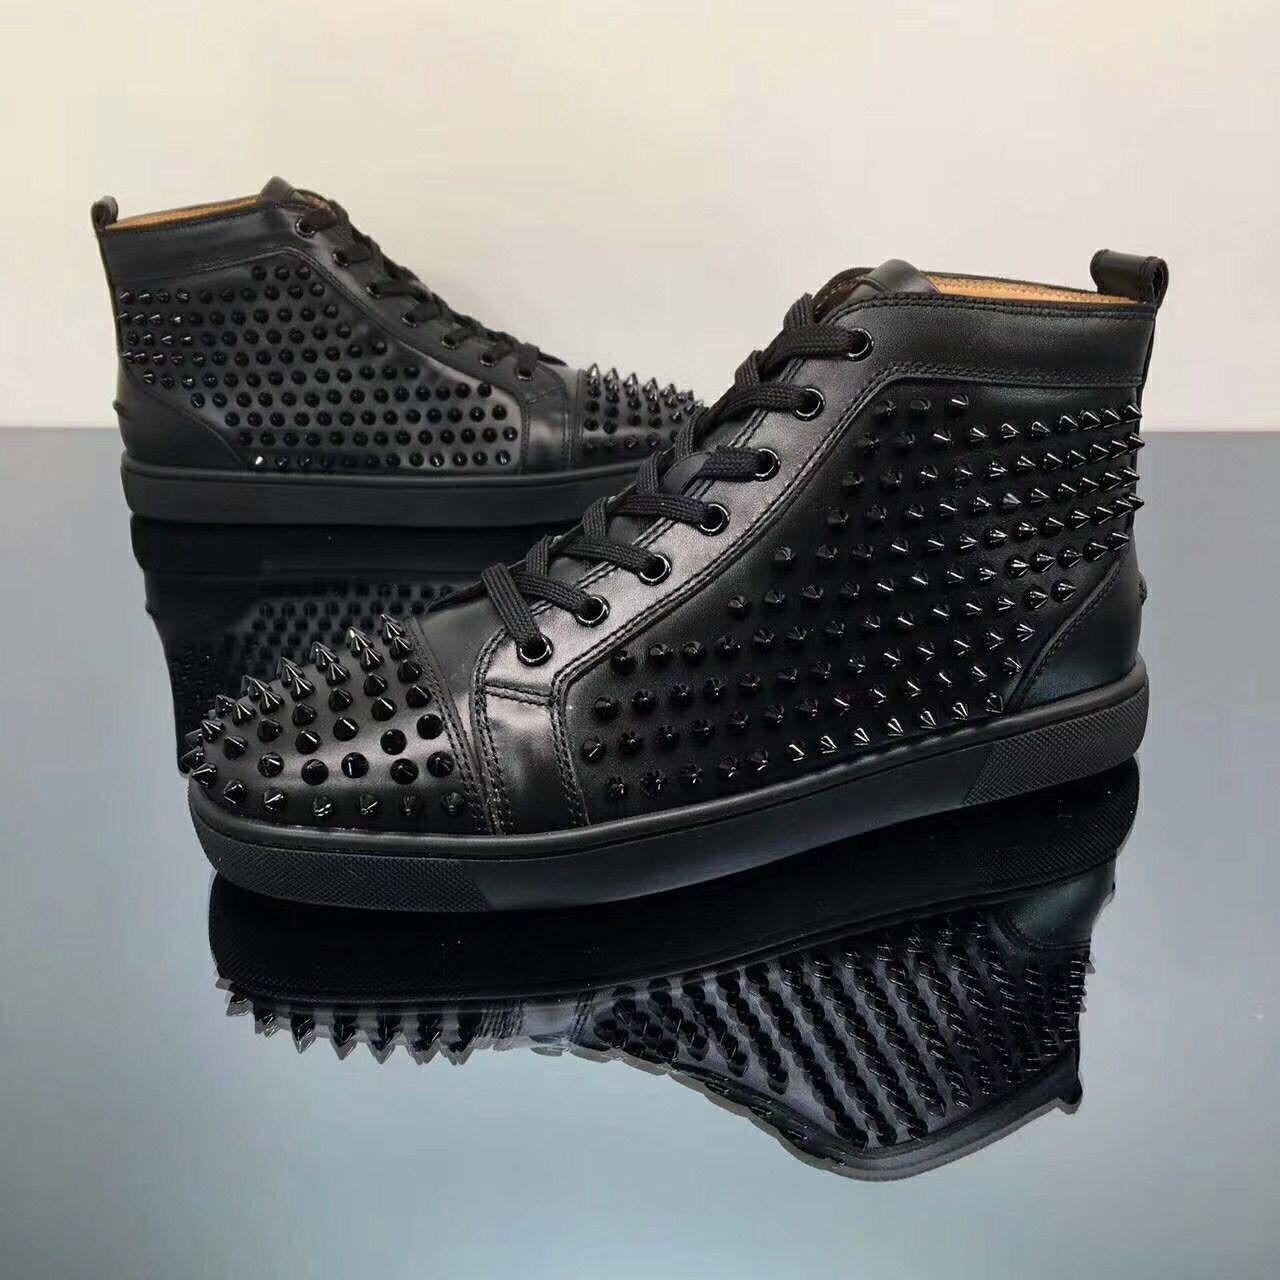 High Top Spikes Sneakers Shoes For Women Men Black Glitter Red Bottom Casual Walking Perfect Rivets Skateboarding Designer Sports Shoes